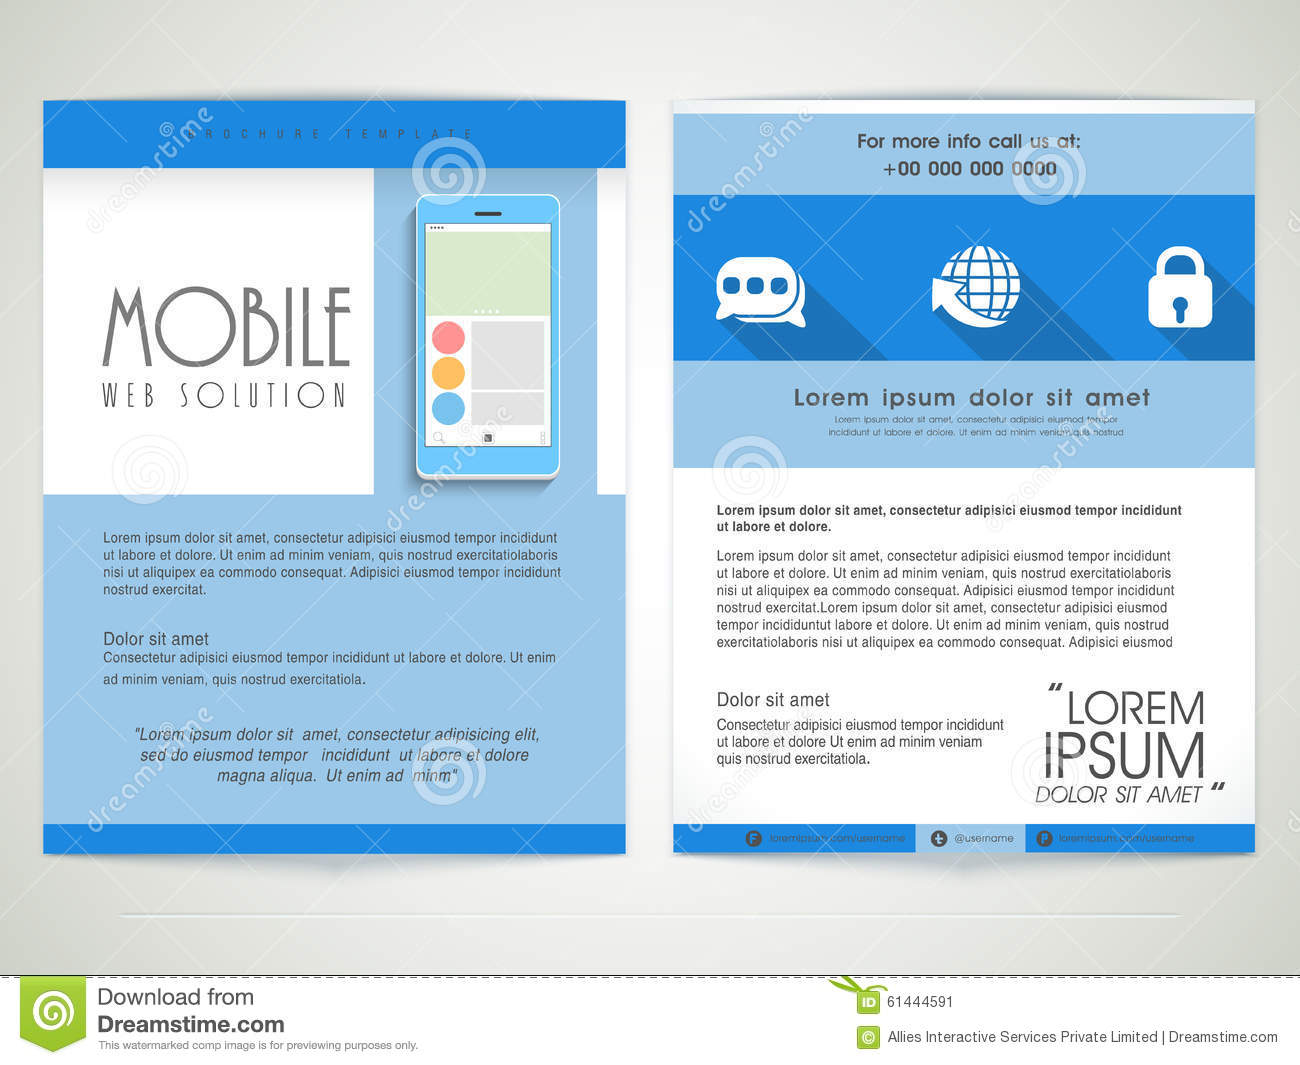 web brochure templates - brochure template or flyer for mobile web solution stock